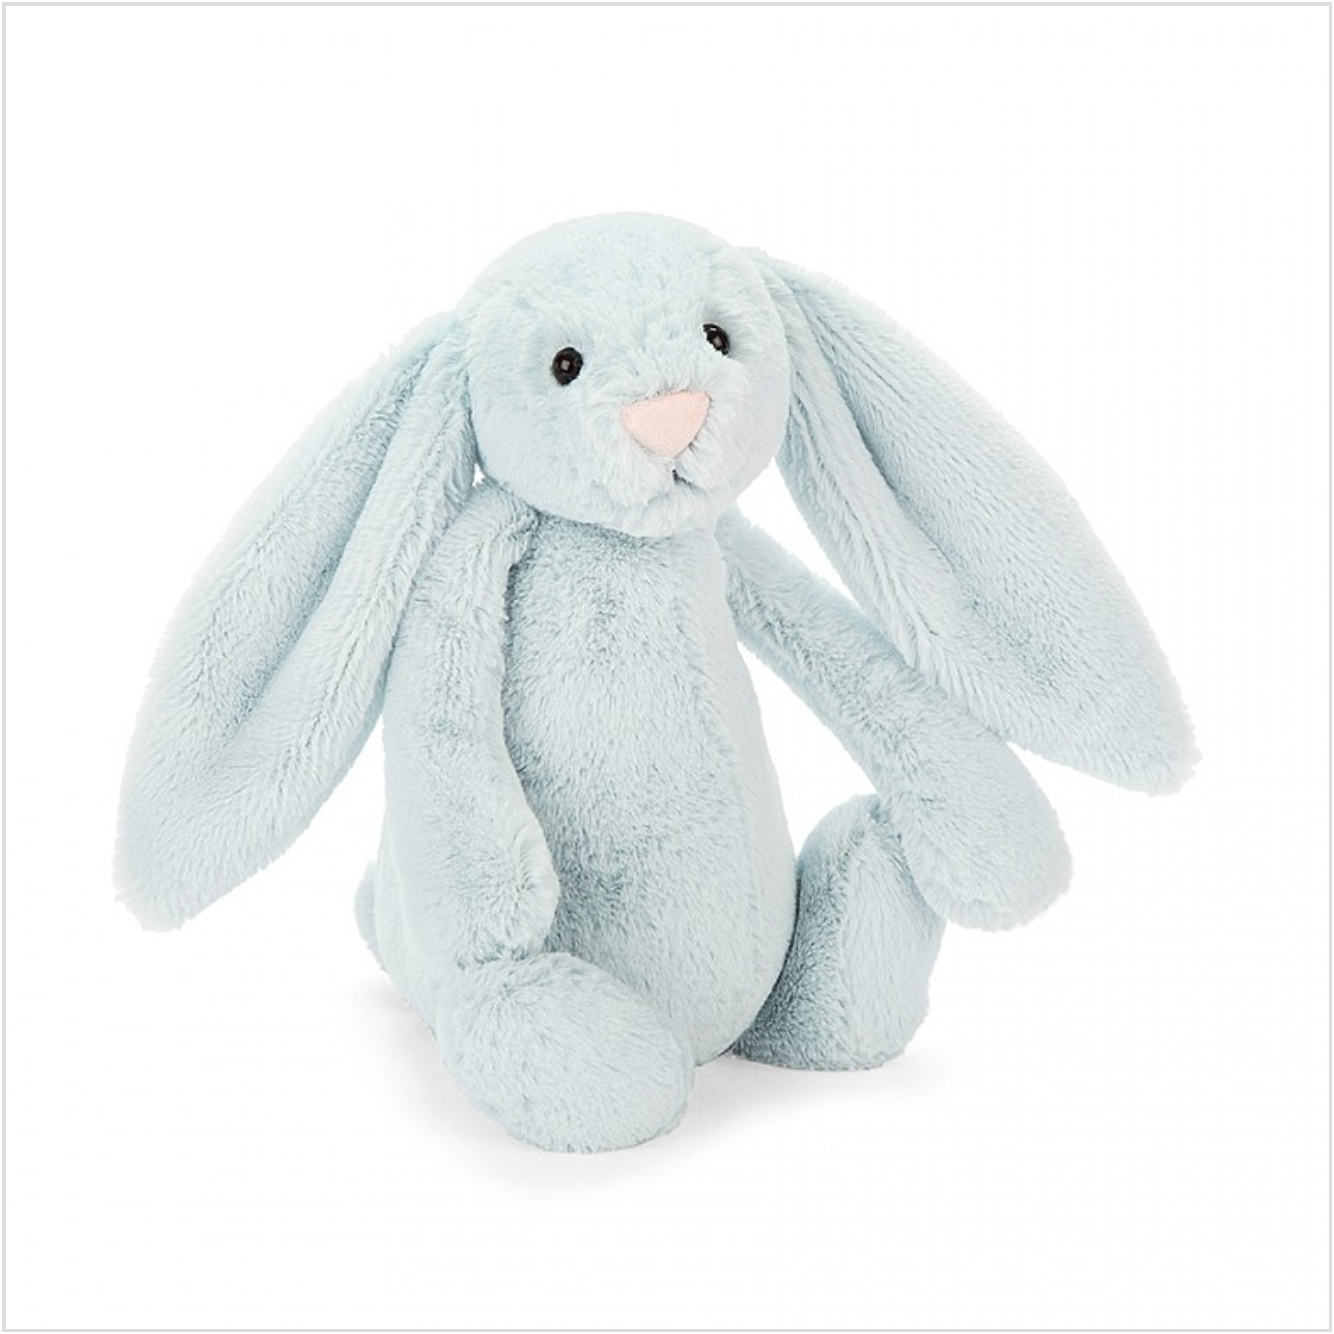 Jellycat Stuffed Animals Are The Perfect Gift For The New